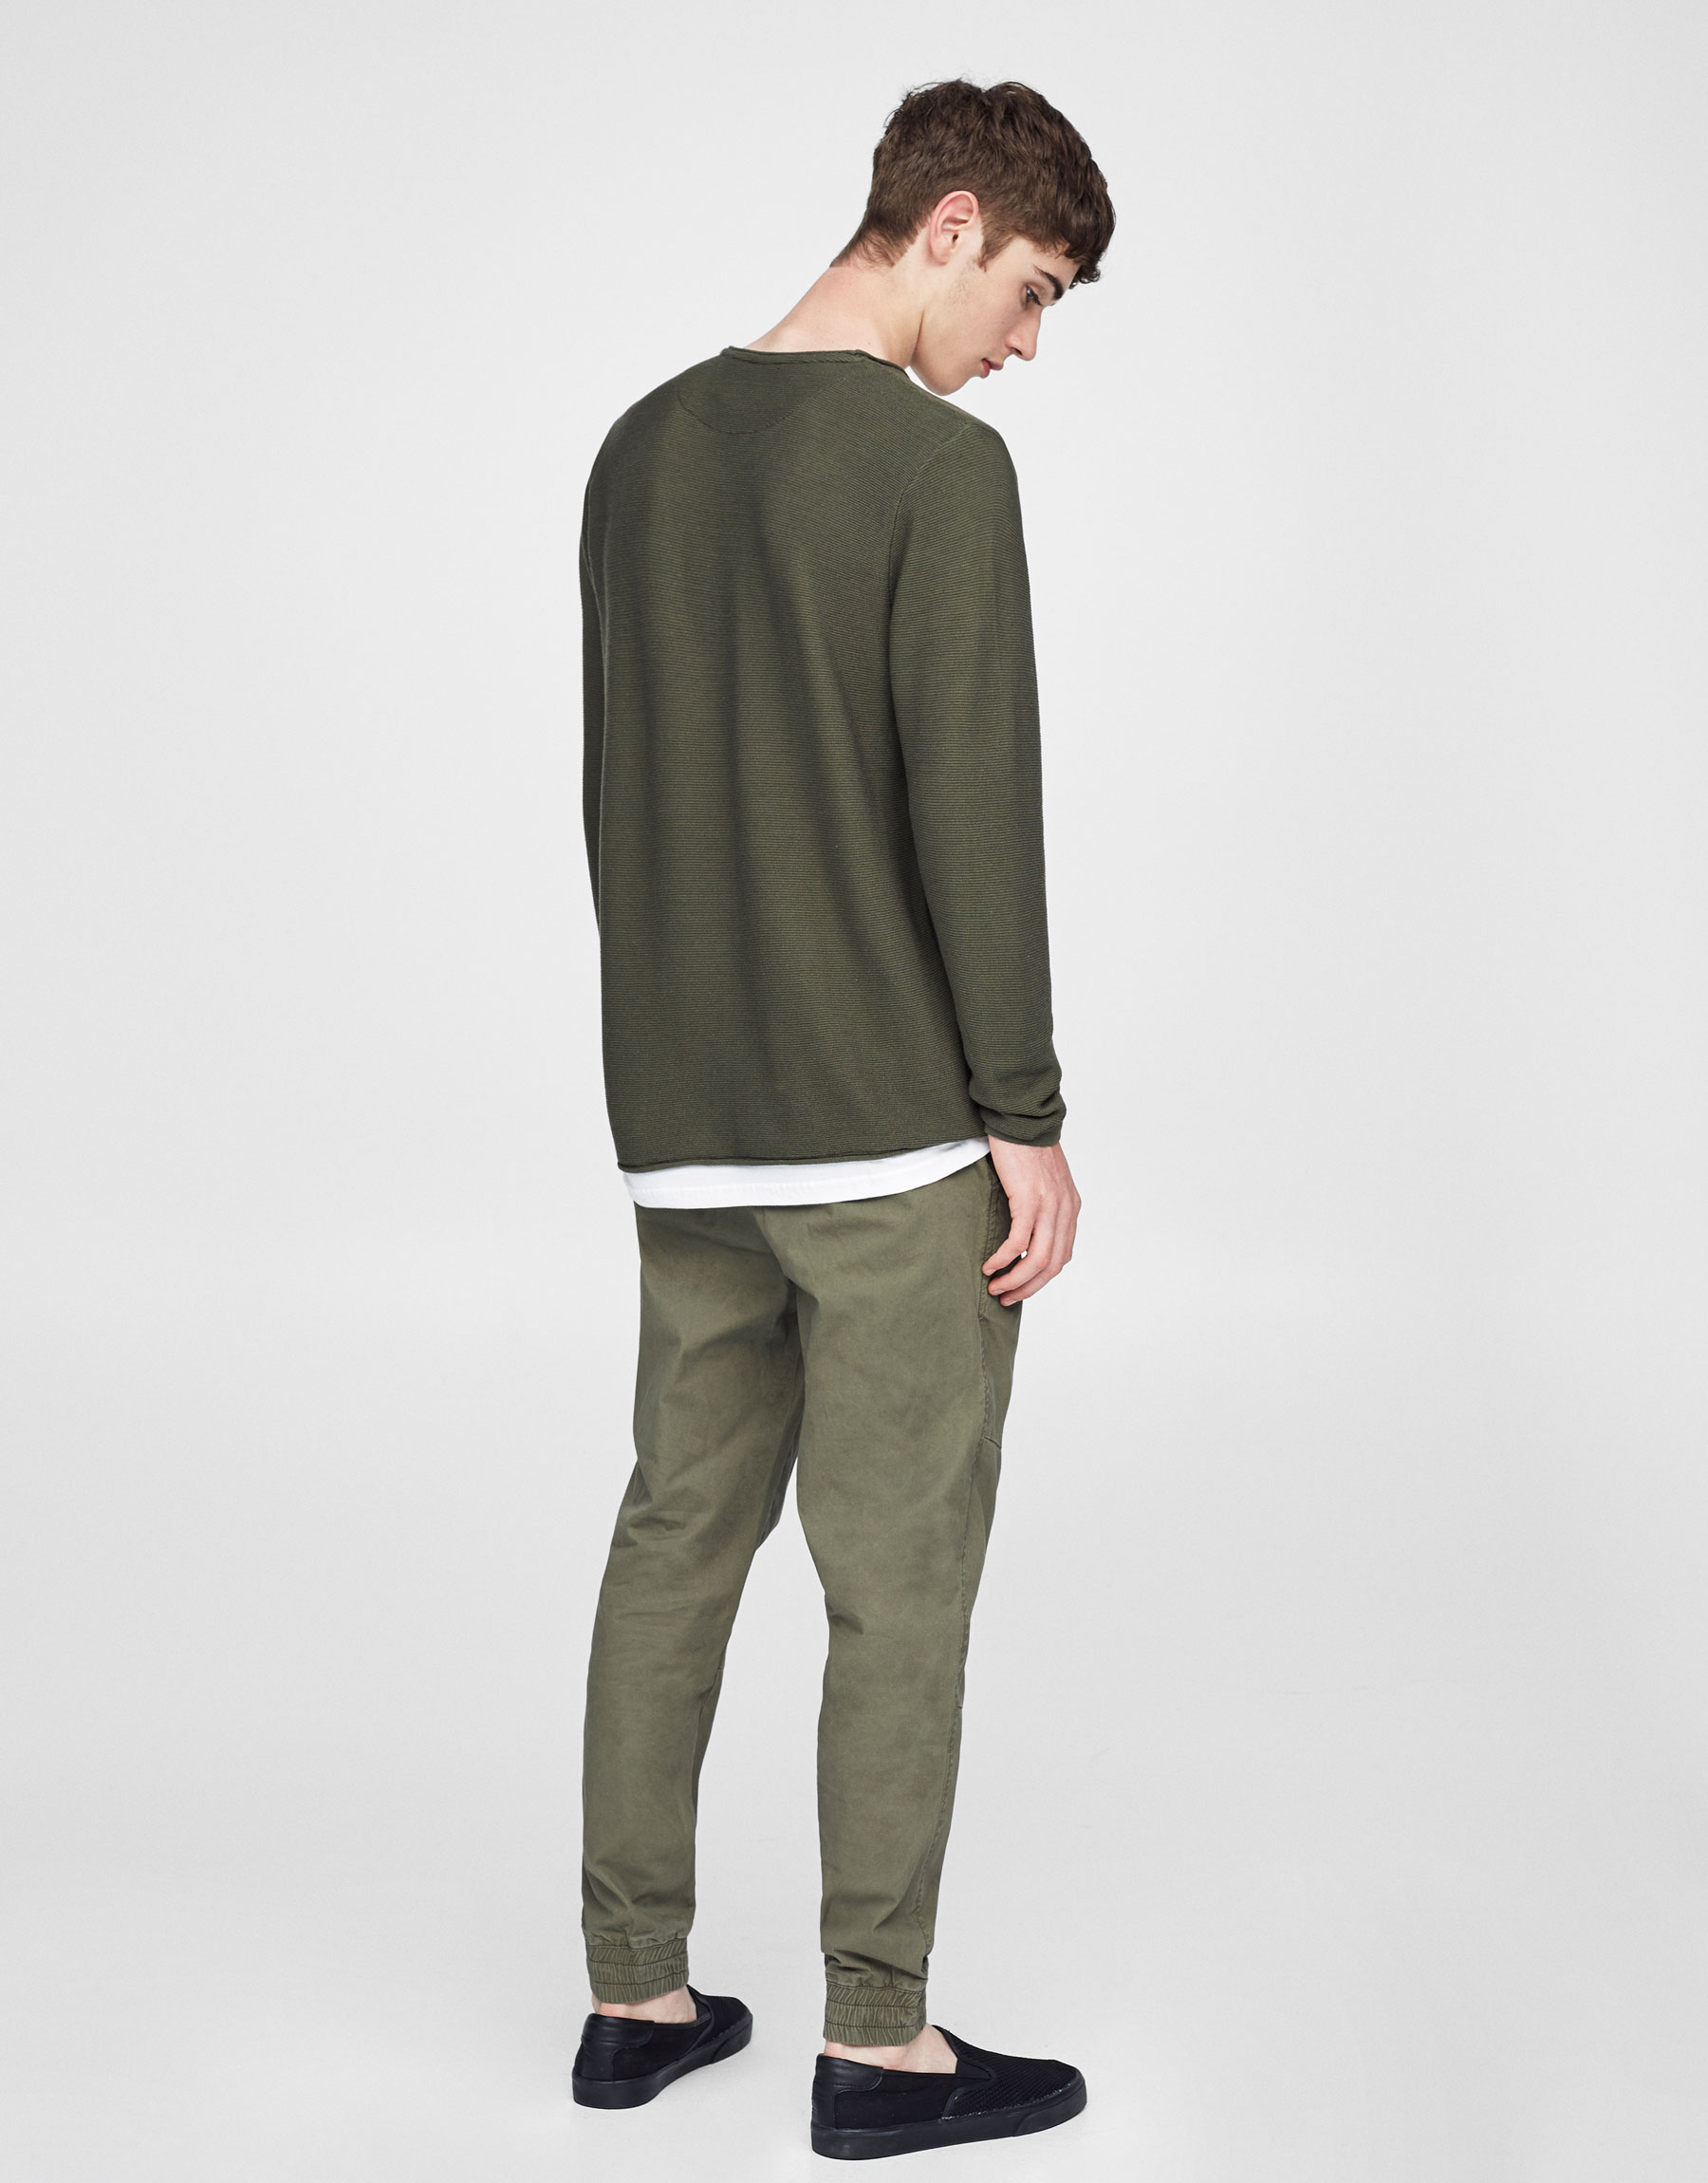 Chino trousers with elastic hems